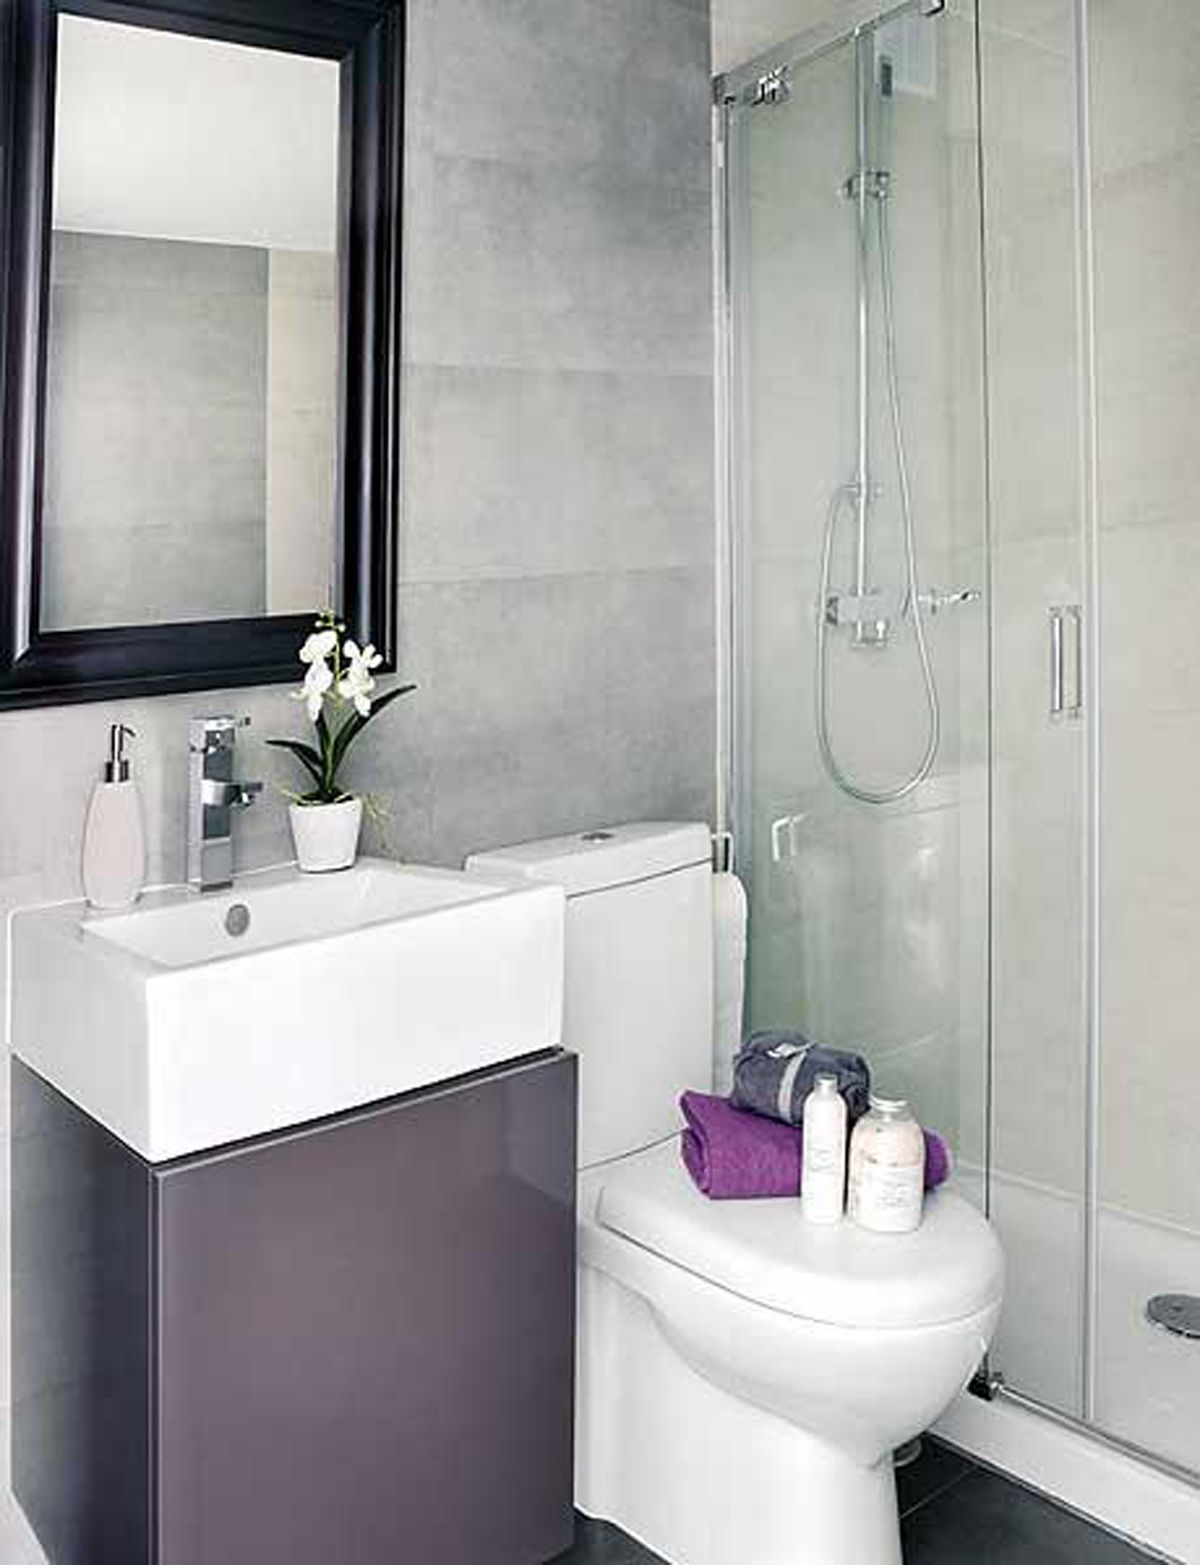 effective interior design small apartment astounding small space with white purple bathroom in interior designs for small apartments with wall mirror also - Bathroom Interior Design Ideas